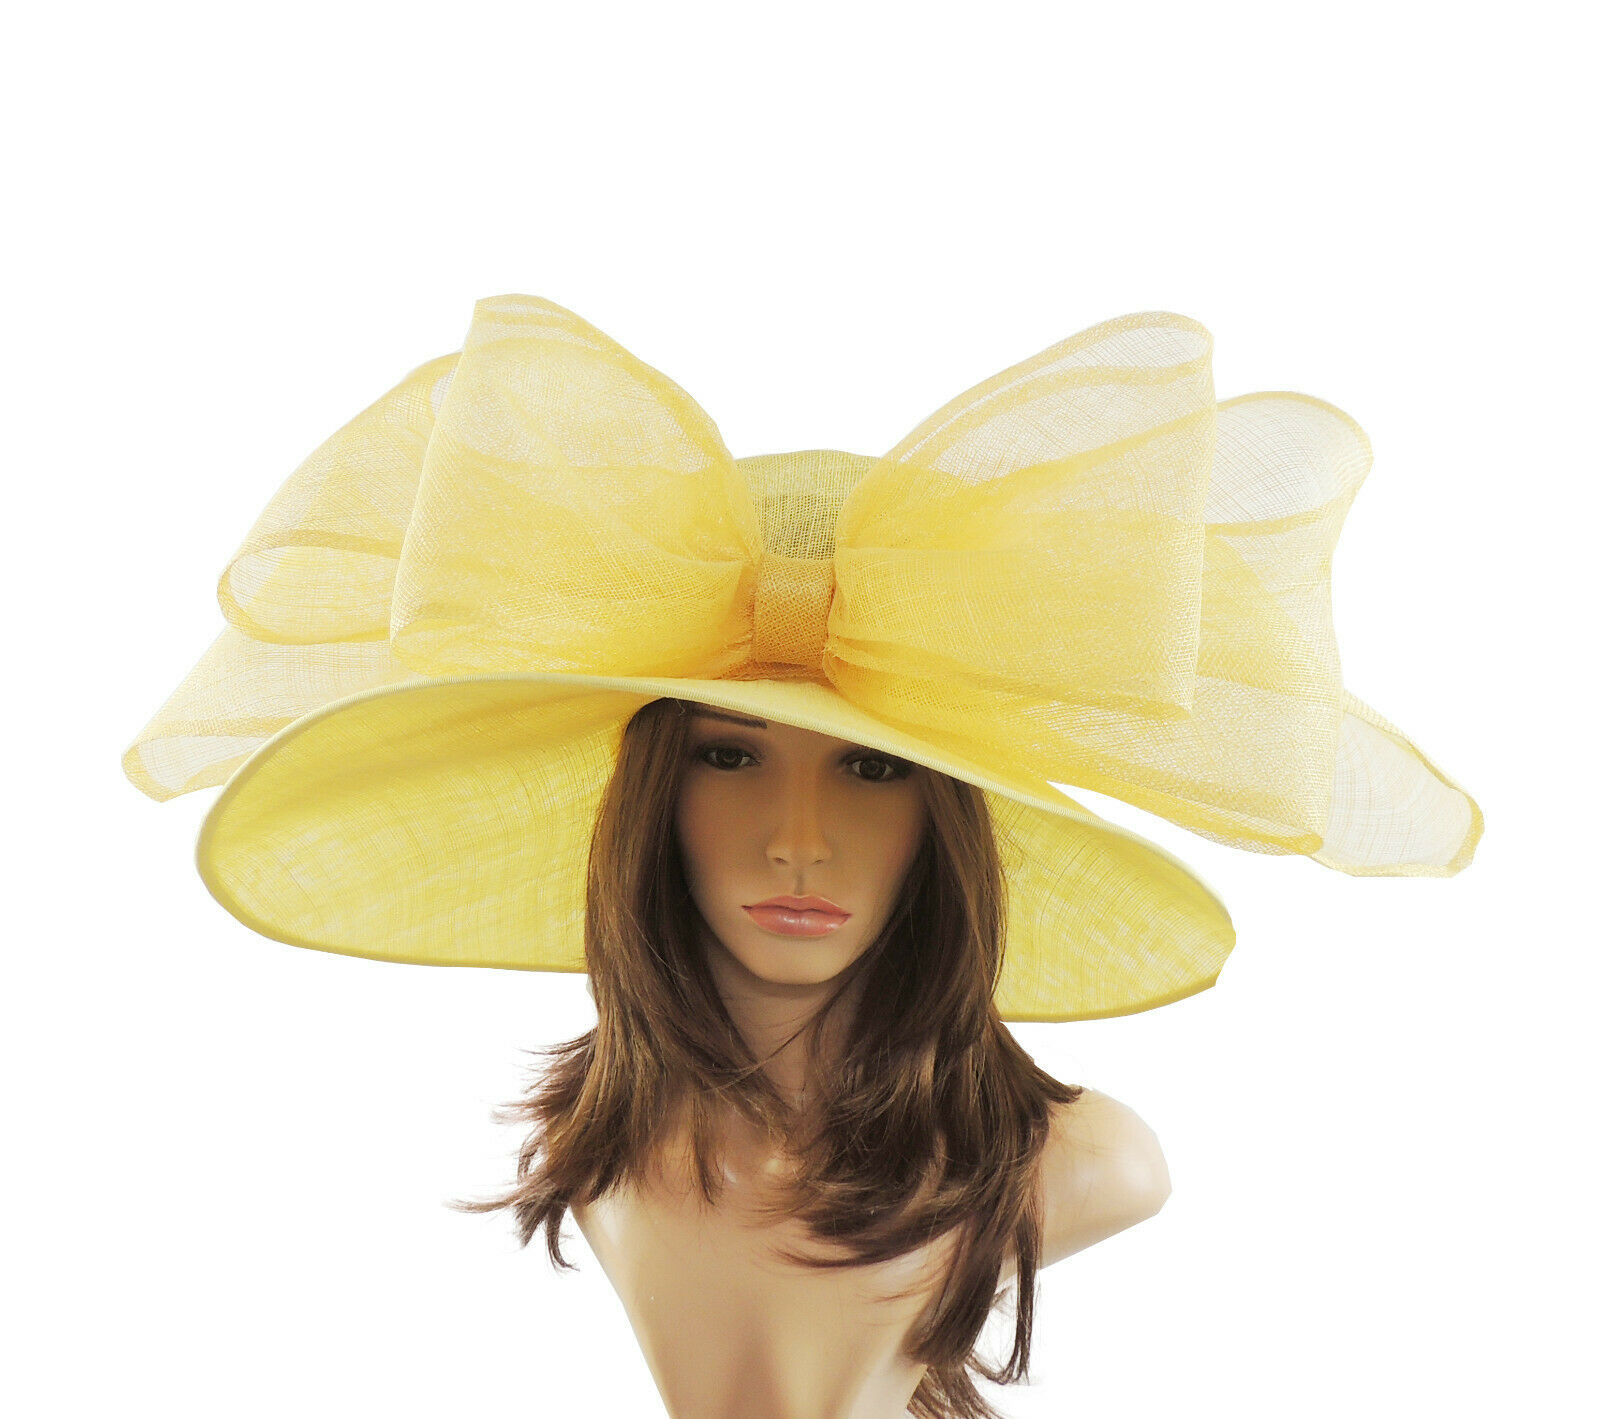 Lemon Yellow Large Ascot Hat for Weddings, Ascot, Derby in many colors HM3